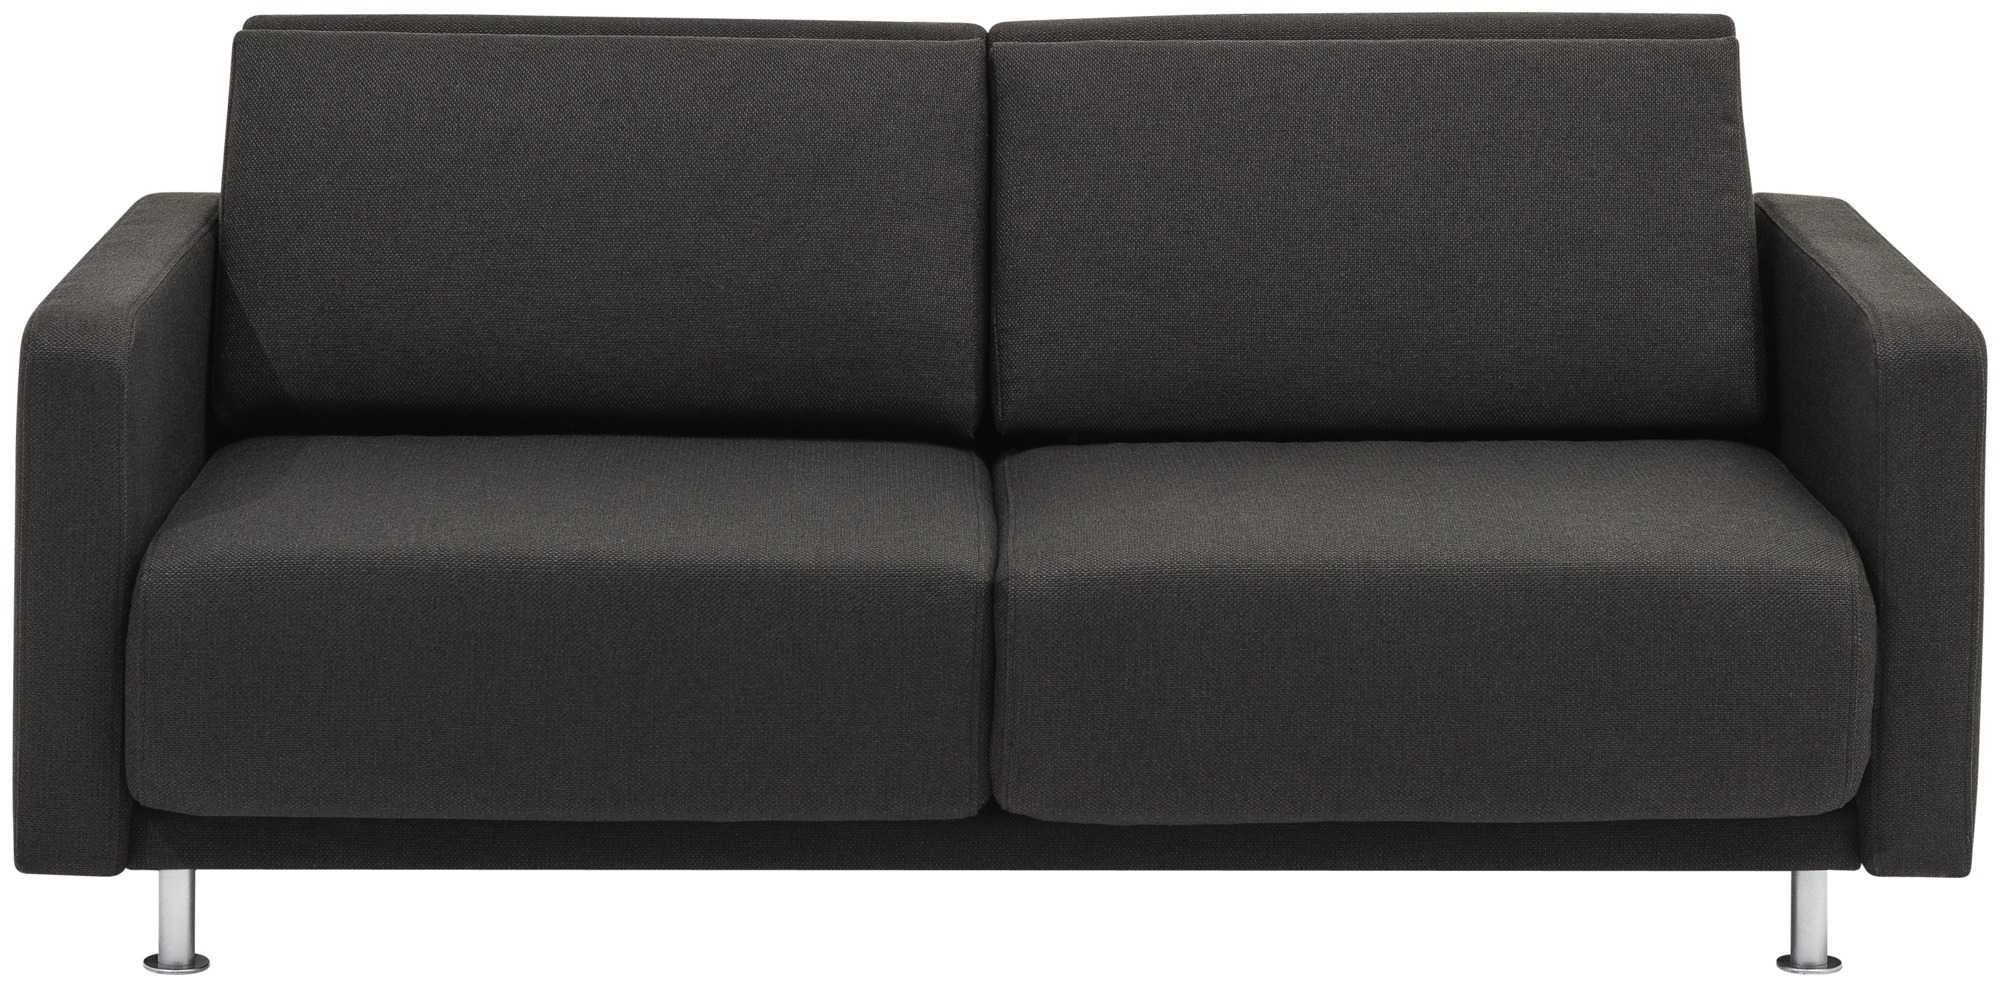 black and white checkered sofa bed long knight power reclining reviews sit sleep recline on the melo